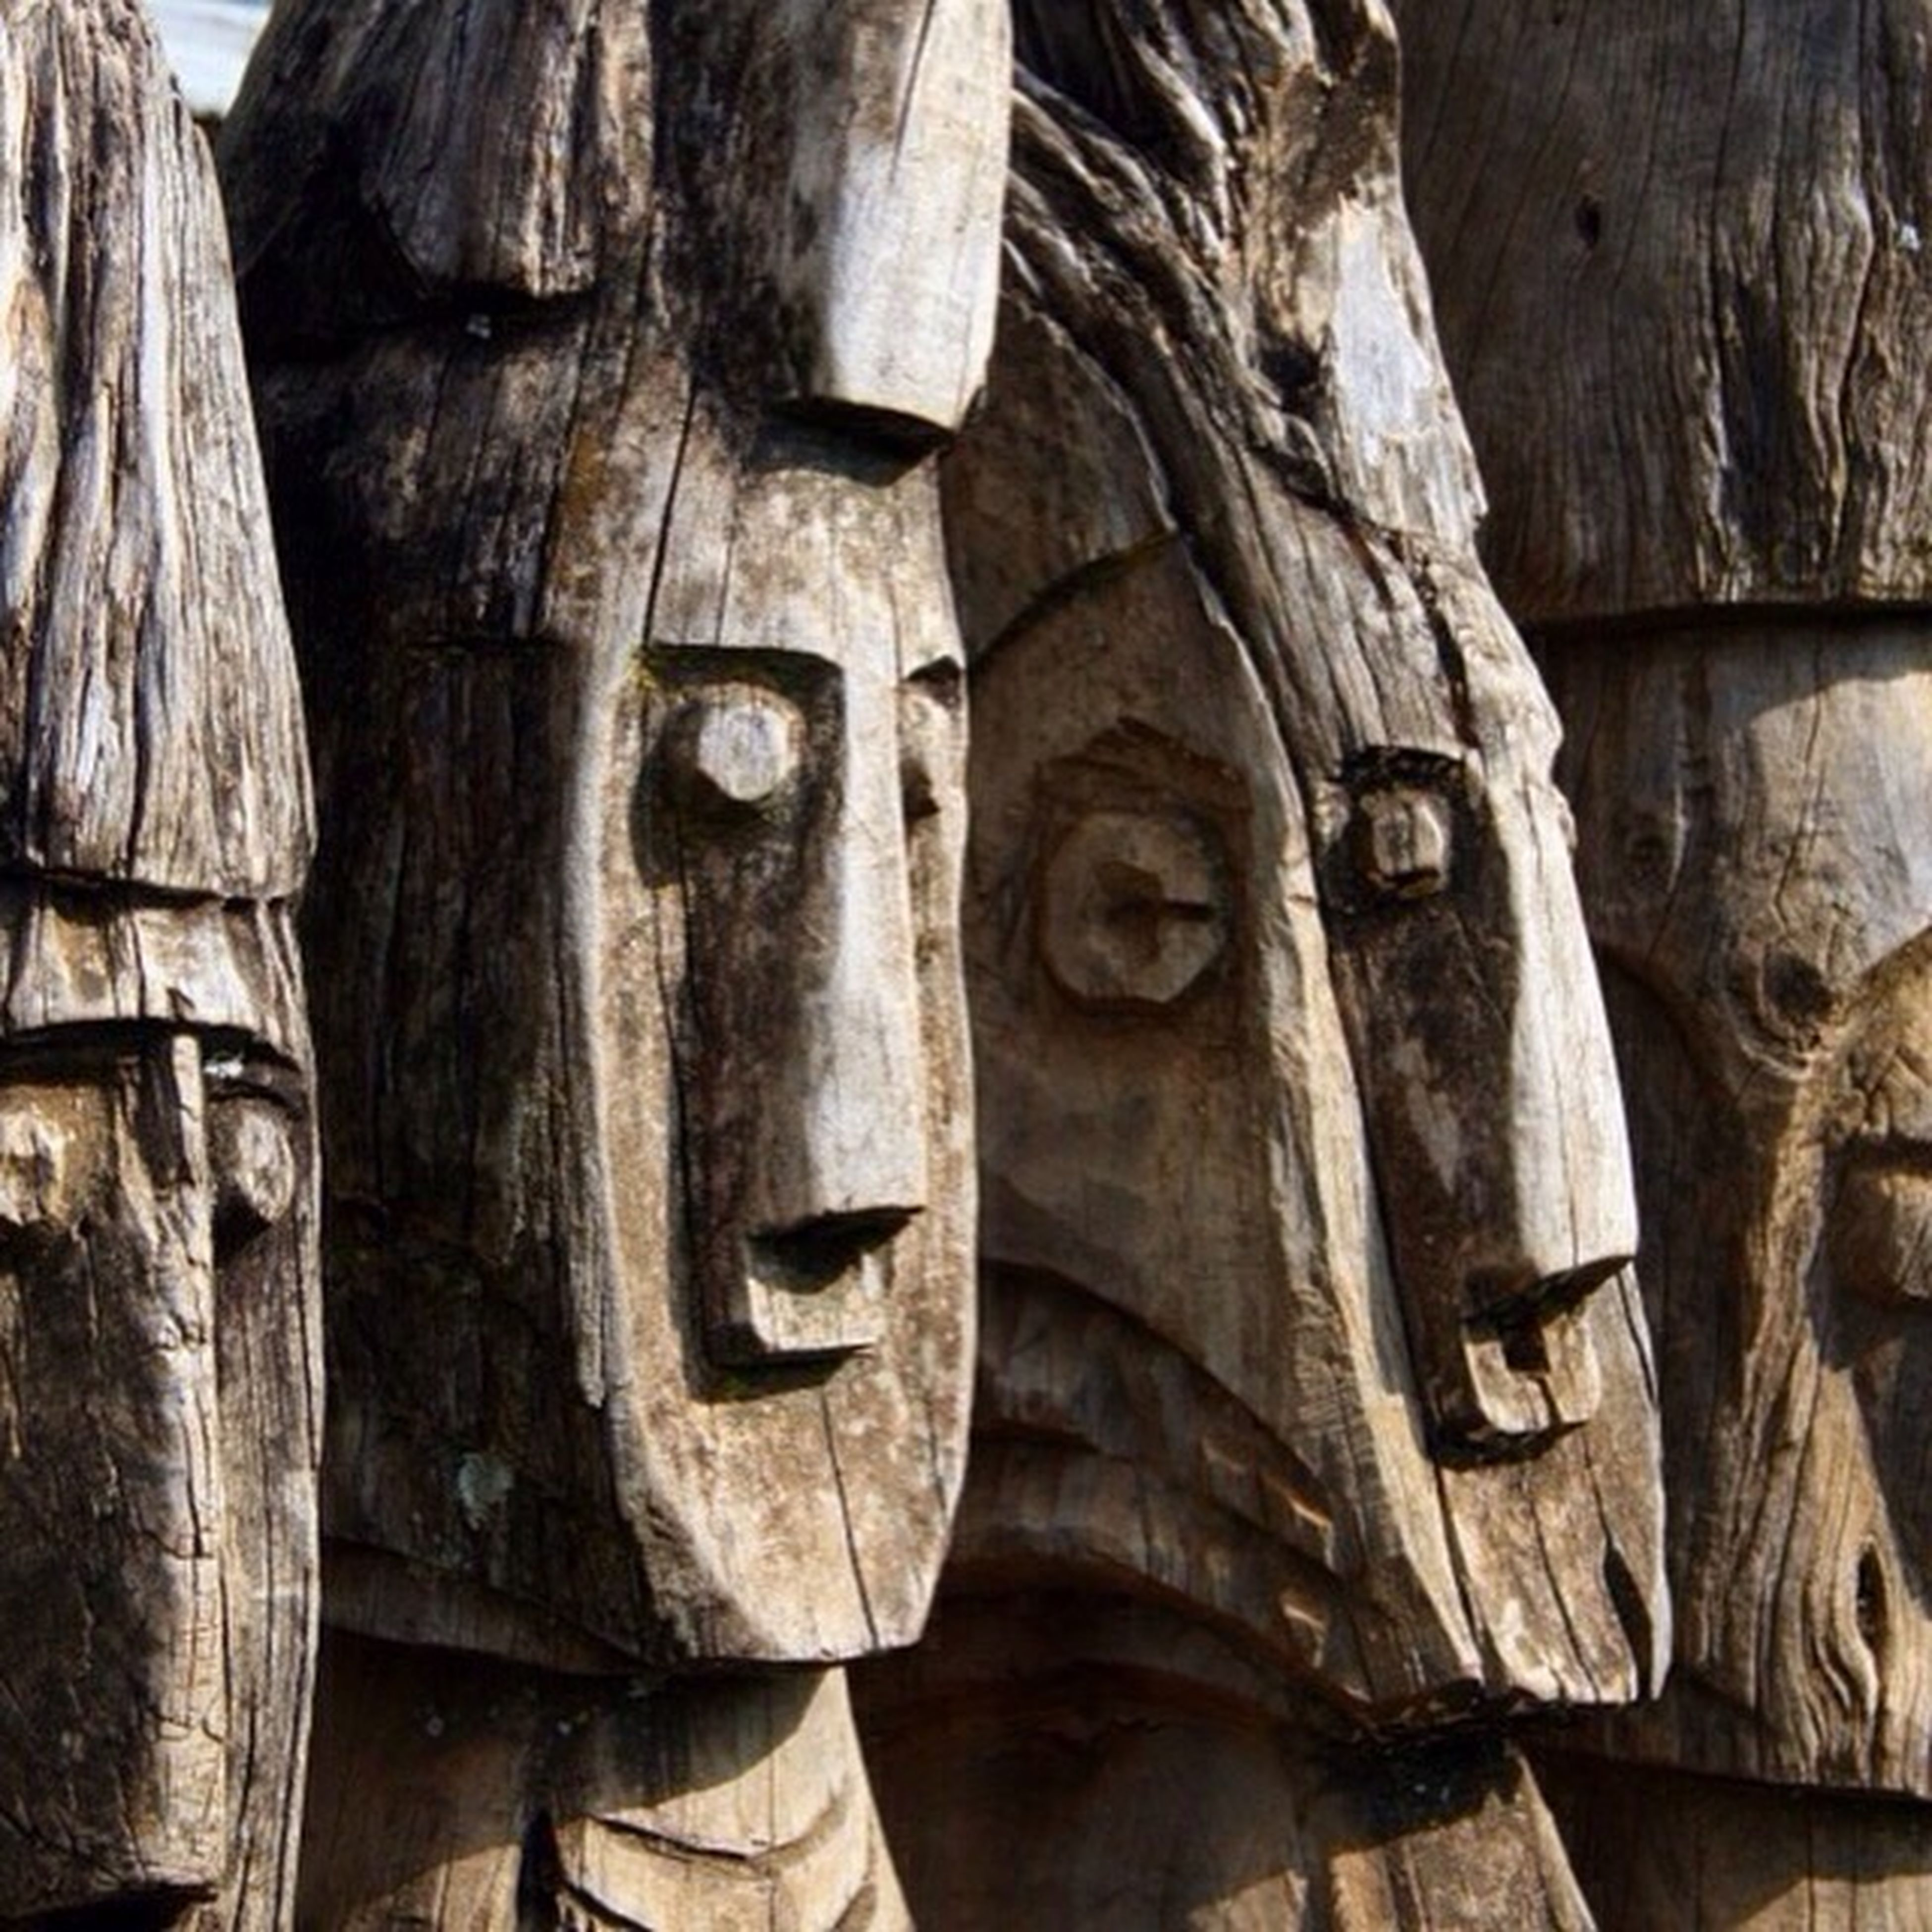 art and craft, art, creativity, human representation, sculpture, statue, close-up, wood - material, old, carving - craft product, wooden, history, religion, weathered, no people, ancient, wood, spirituality, the past